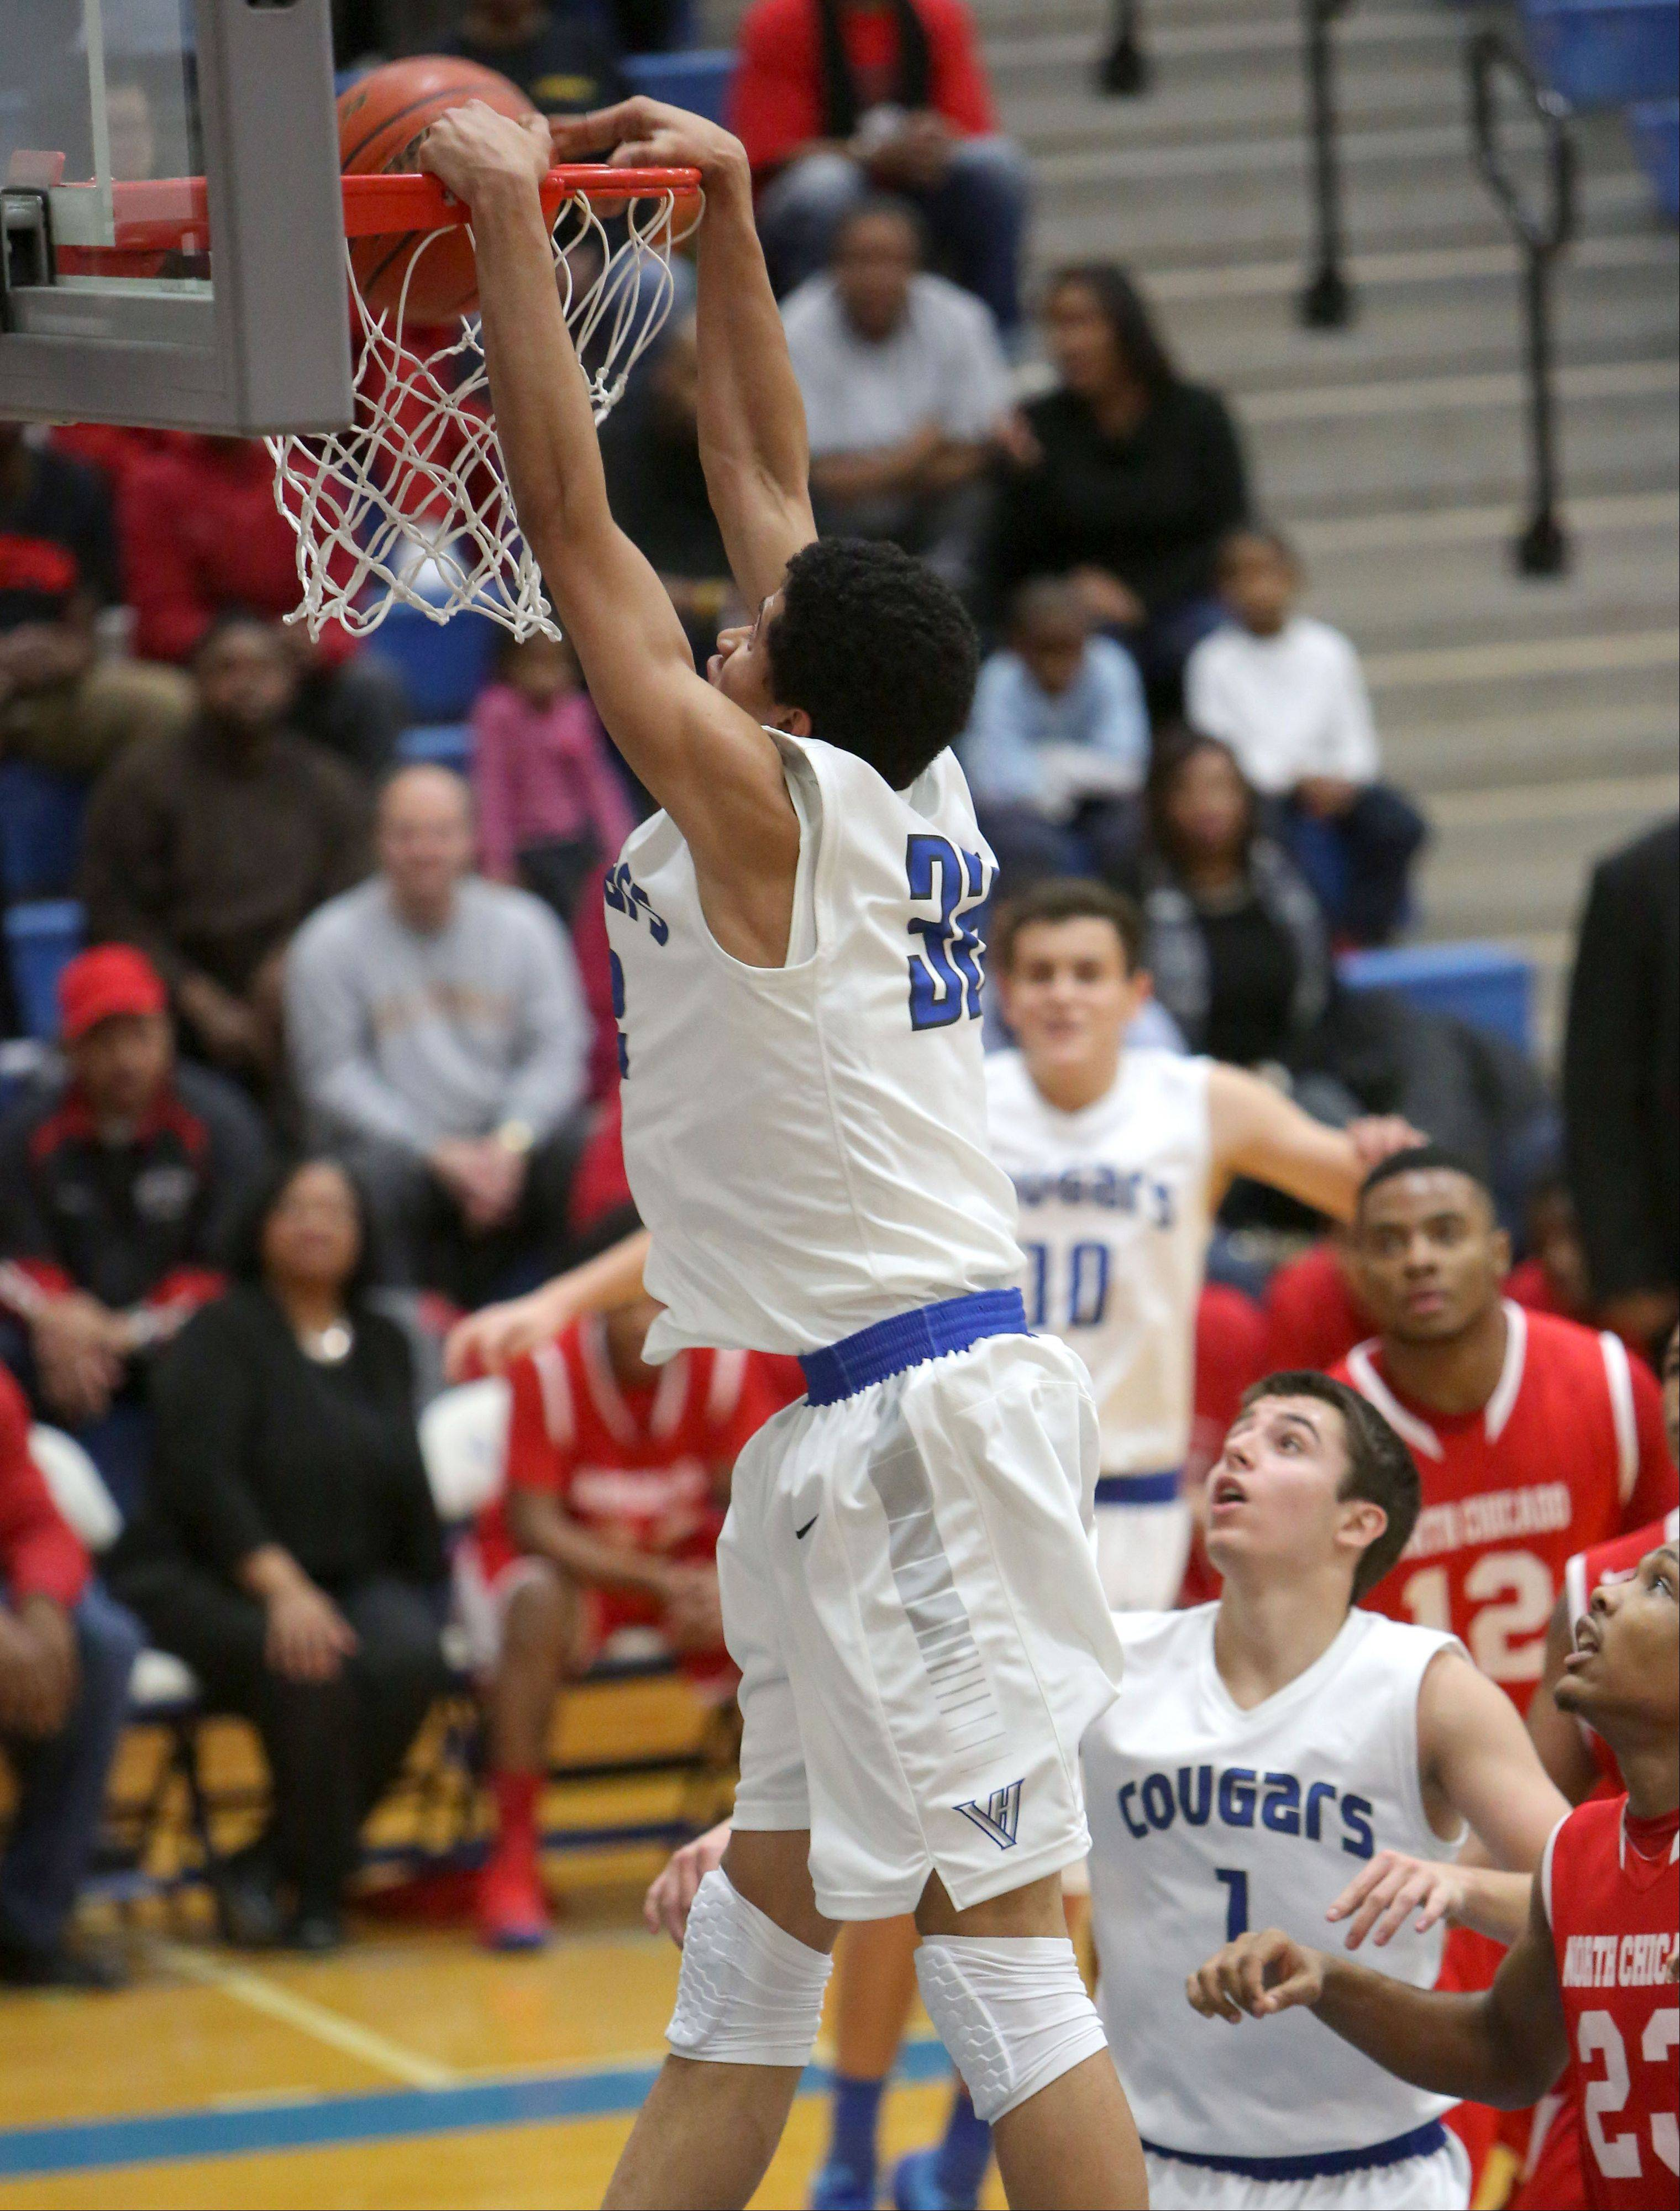 Vernon Hills' Lem Turner goes for the dunk during Tuesday's game against North Chicago in Vernon Hills.